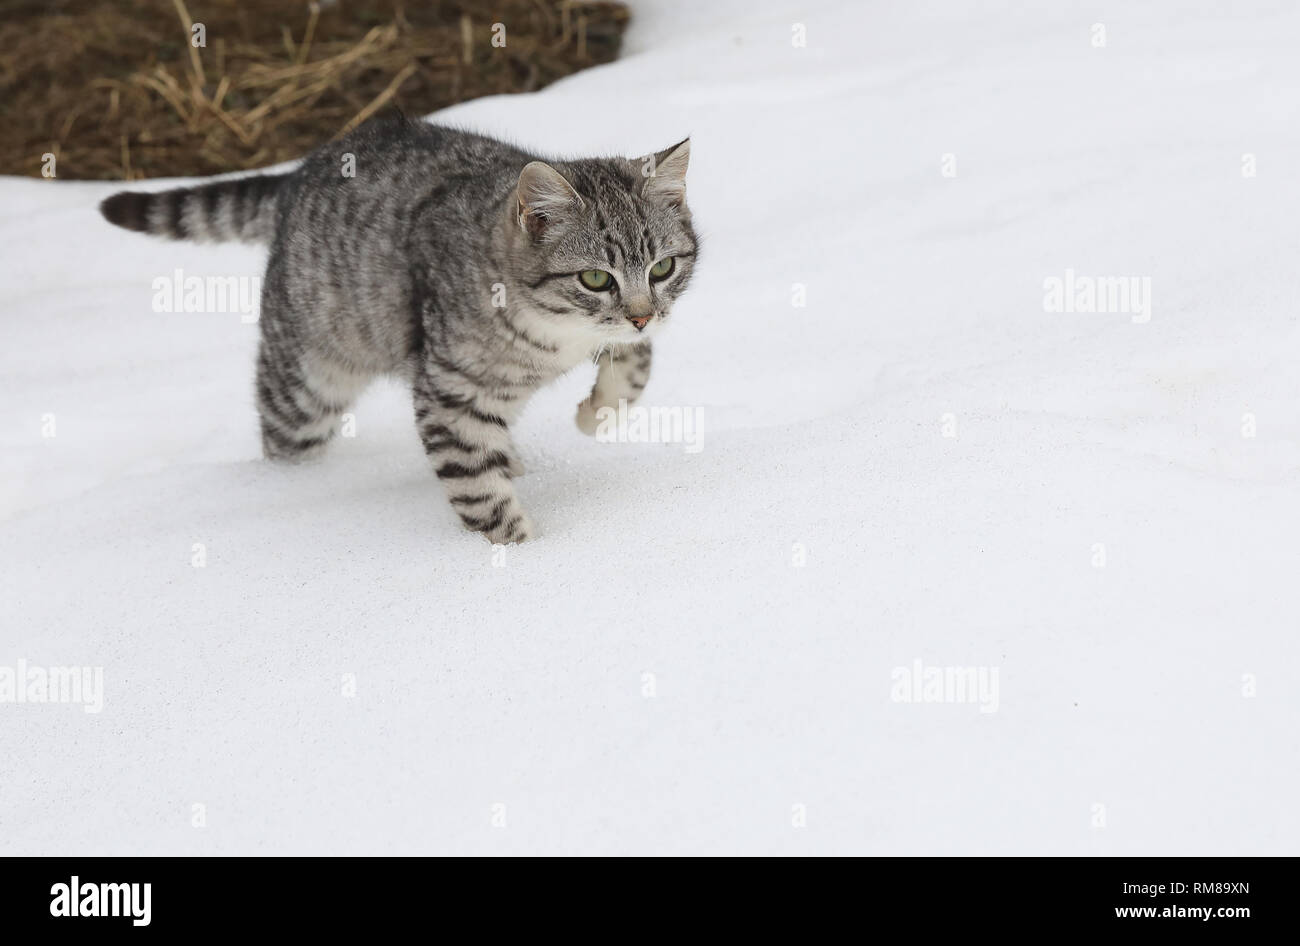 Cute cats in the snow in winter - Stock Image